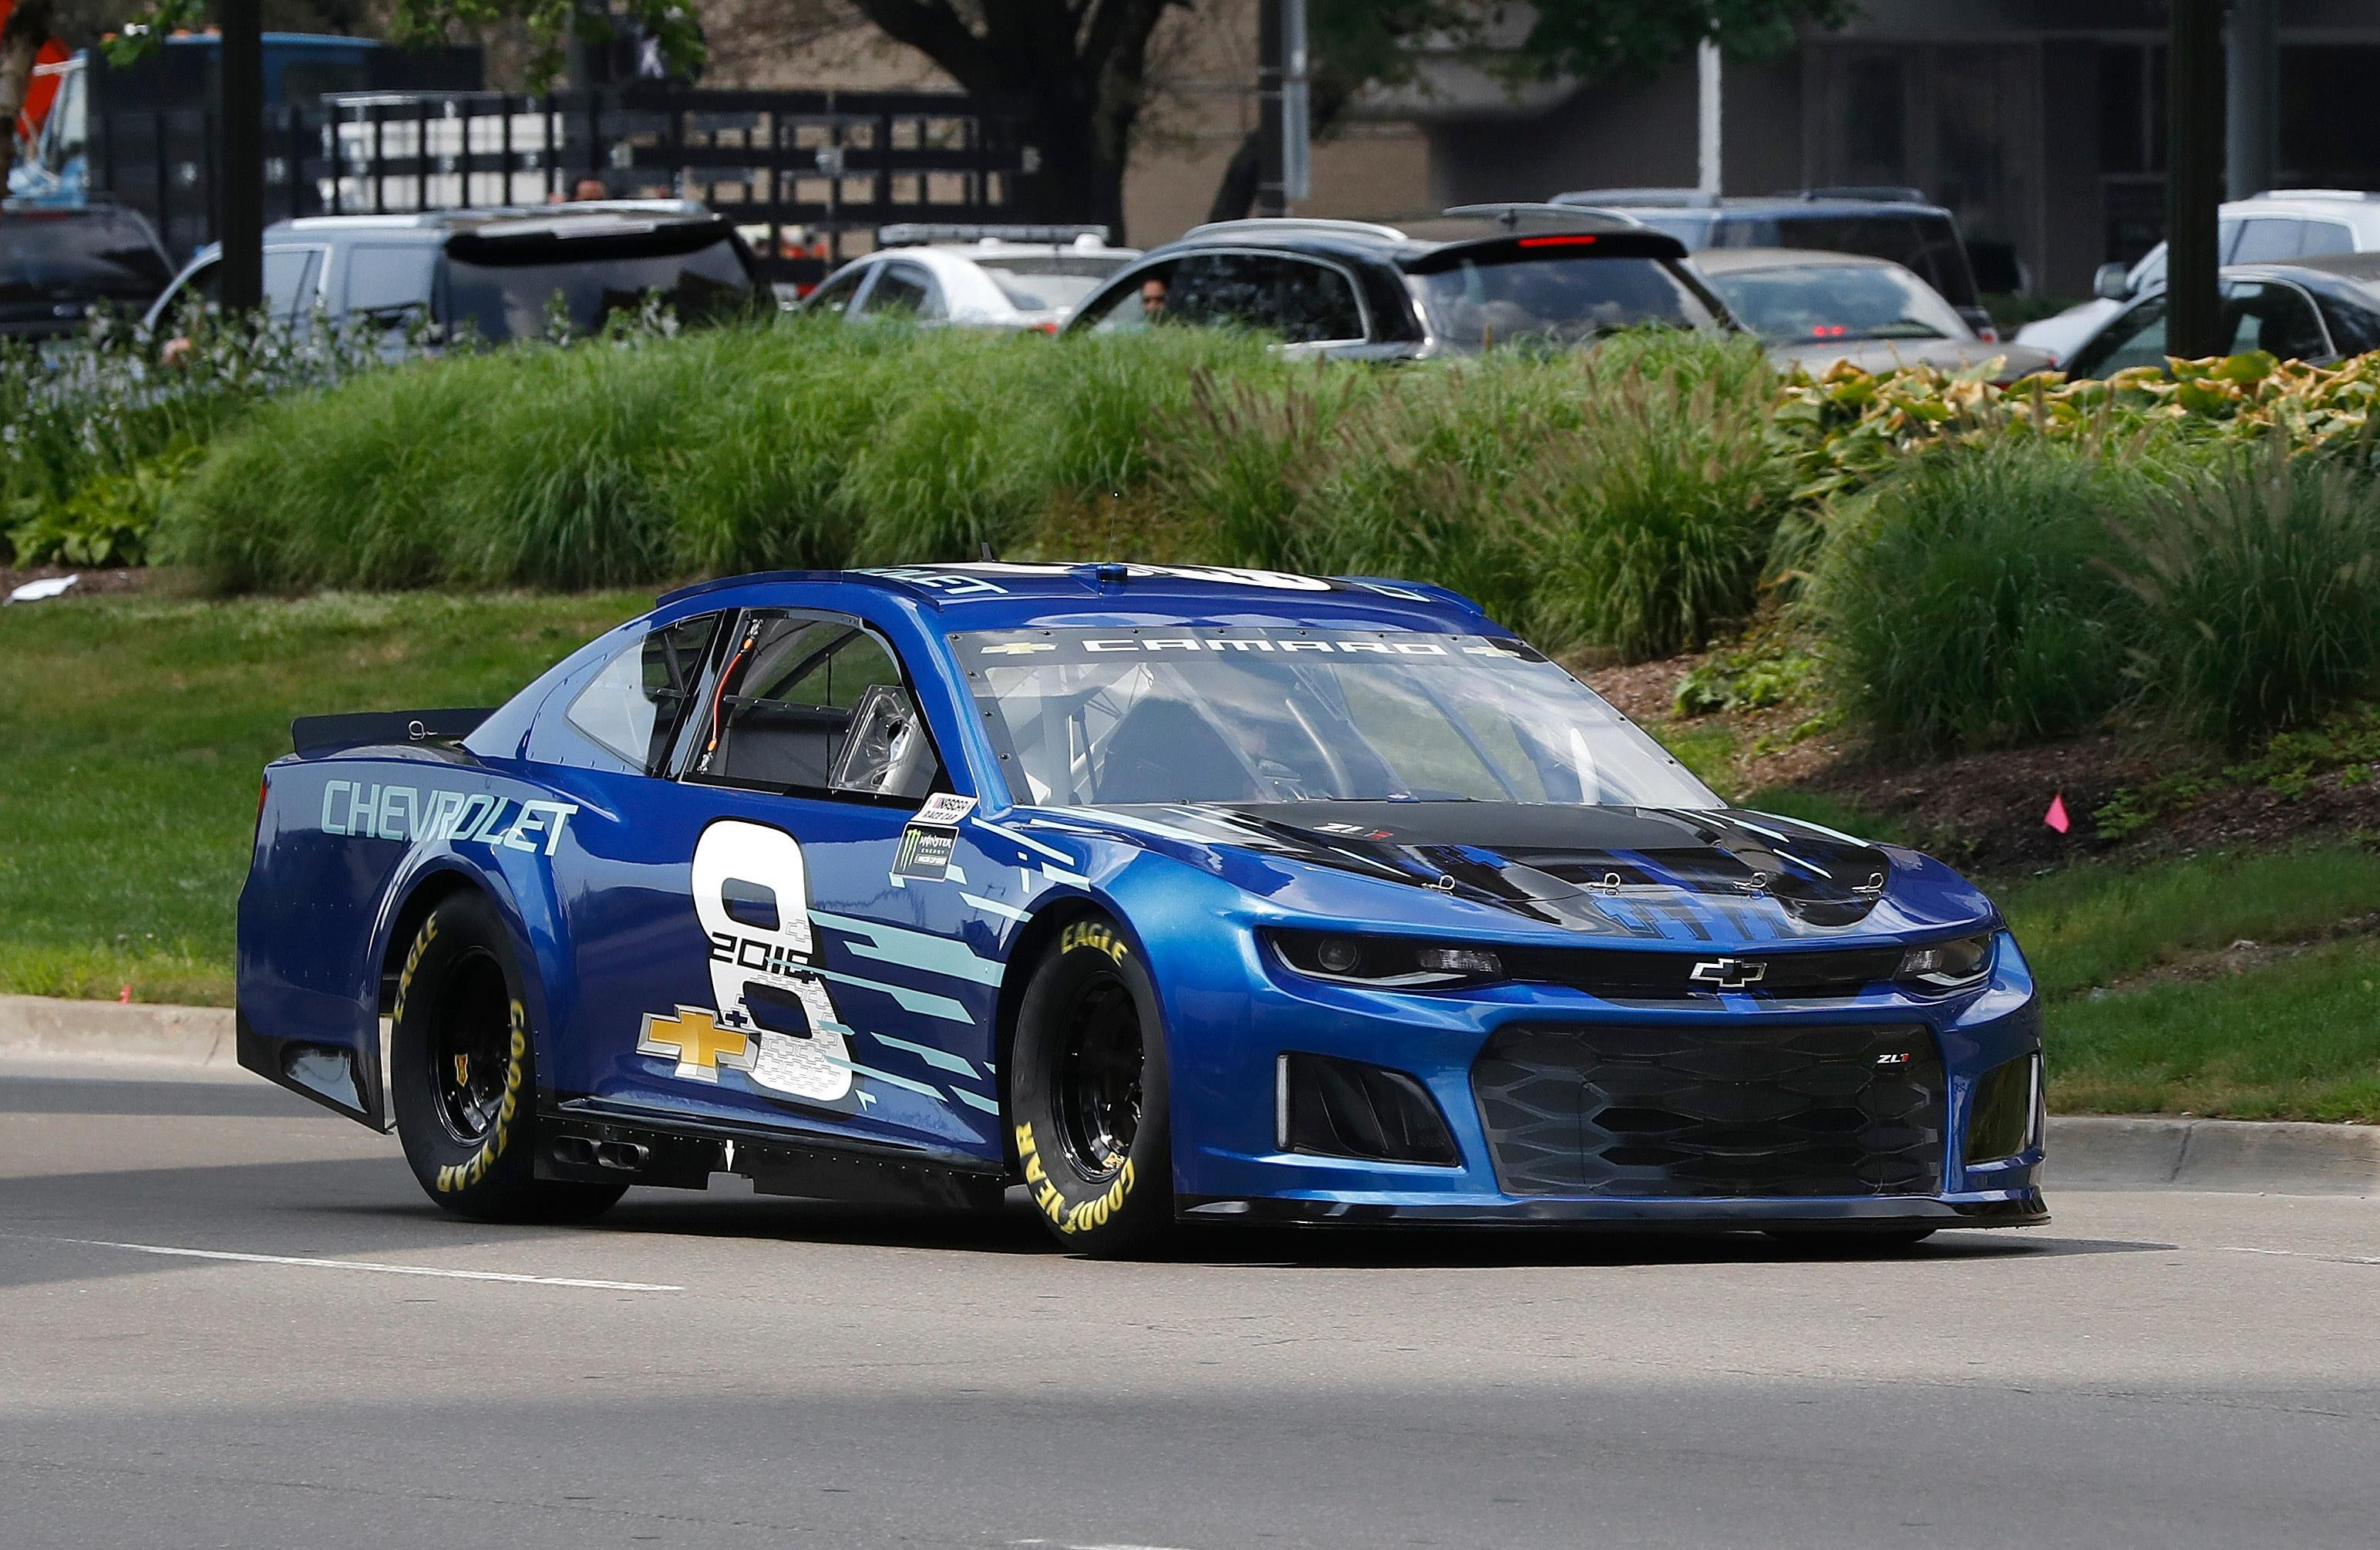 Chevrolet Unveiled Its 2018 Monster Energy Nascar Cup Series Car Thursday At Its Corporate Headquarters In Chevrolet Camaro Zl1 Nascar Race Cars Camaro Zl1